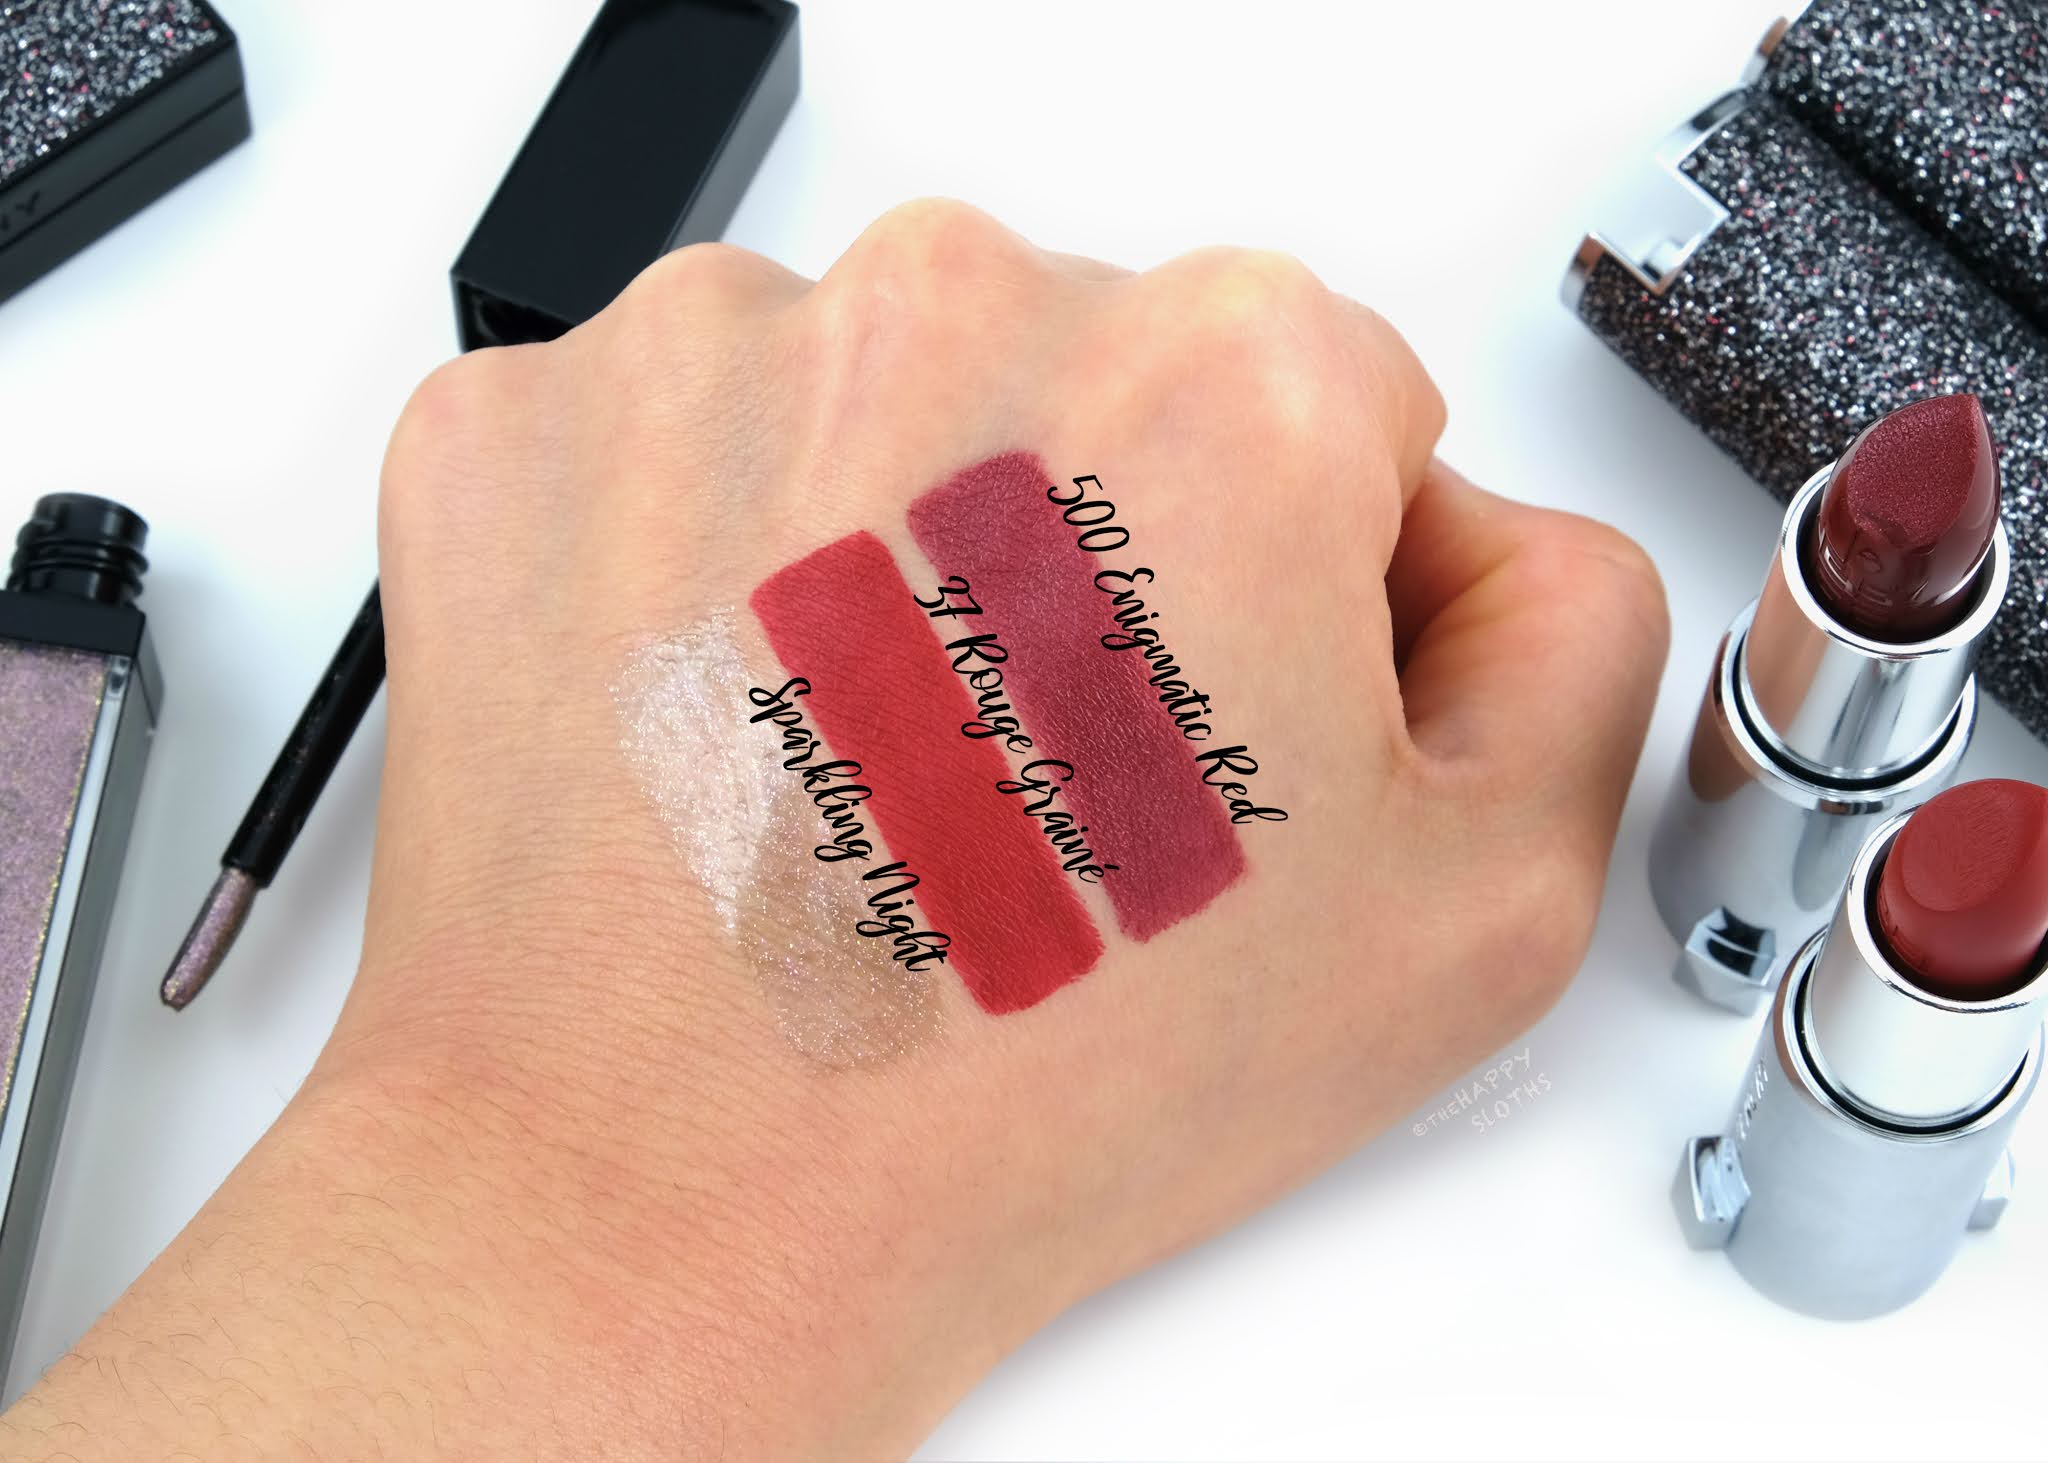 Givenchy | Holiday 2020 Makeup Collection: Review and Swatches